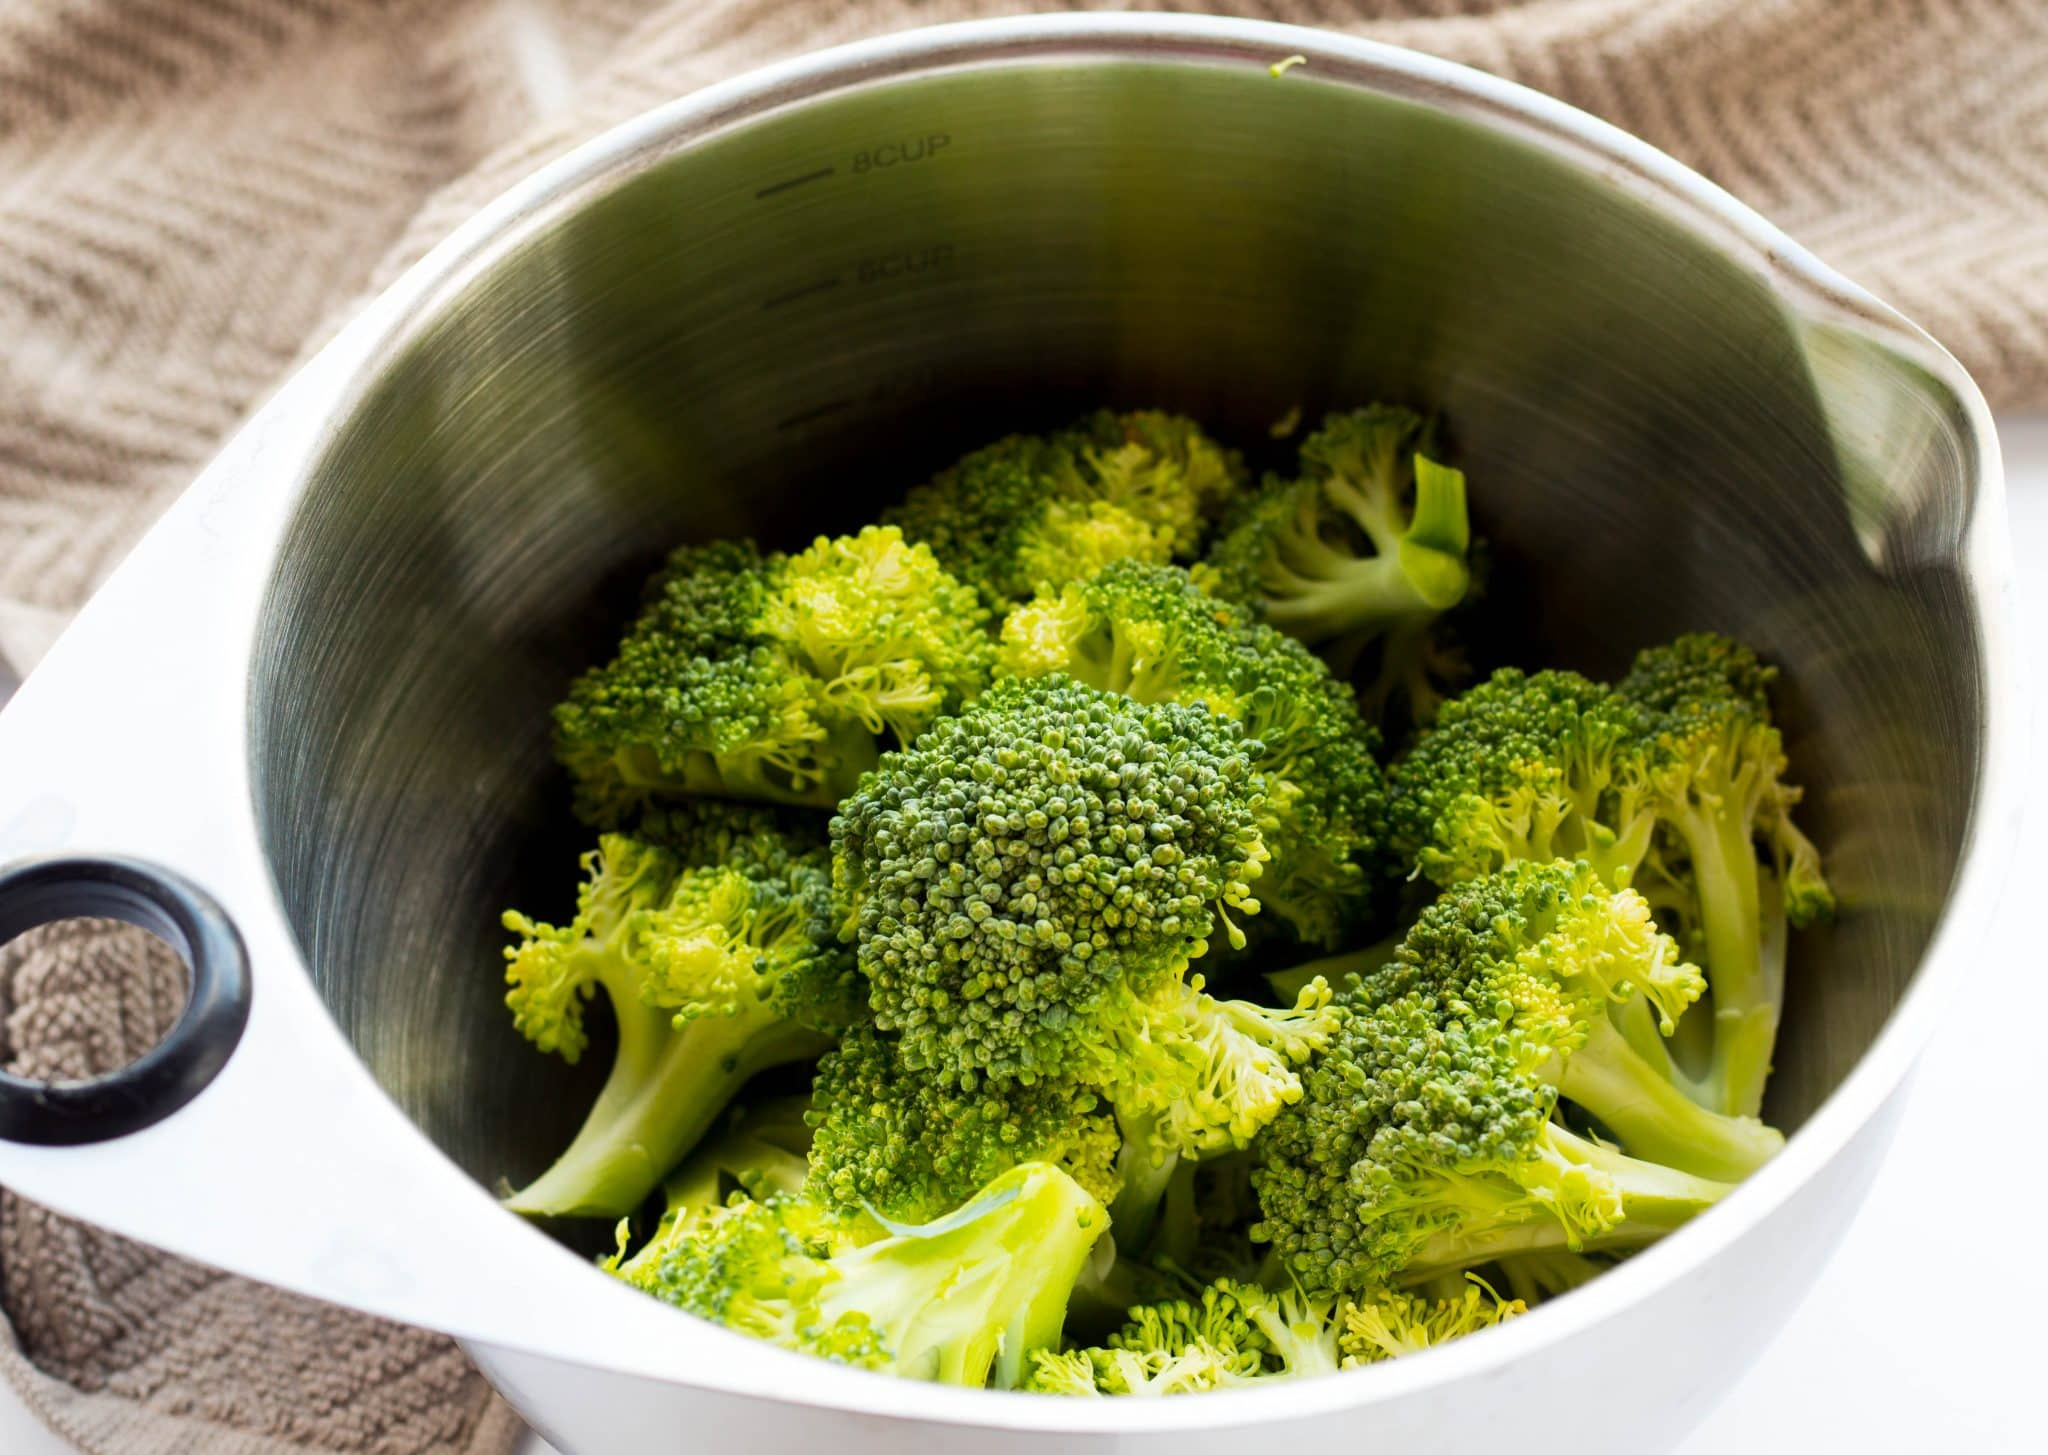 Fresh broccoli florets 4 cups = 247 calories